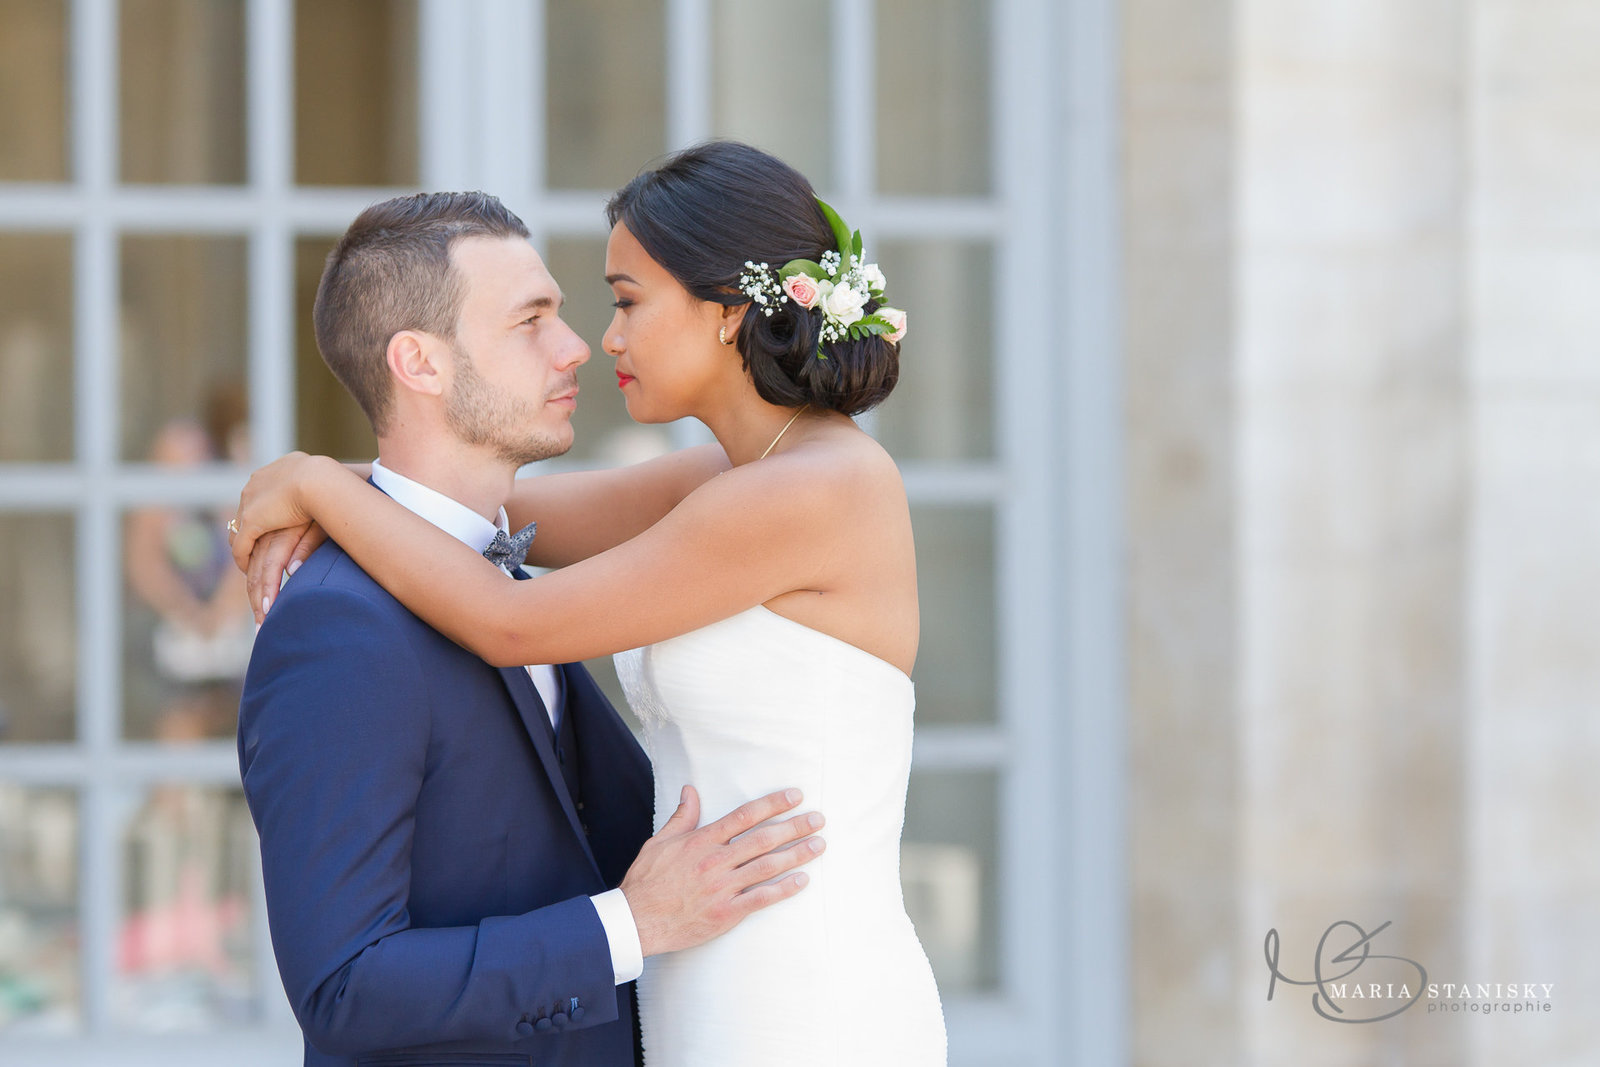 Mariage_Celine&Axel_11072015-0061